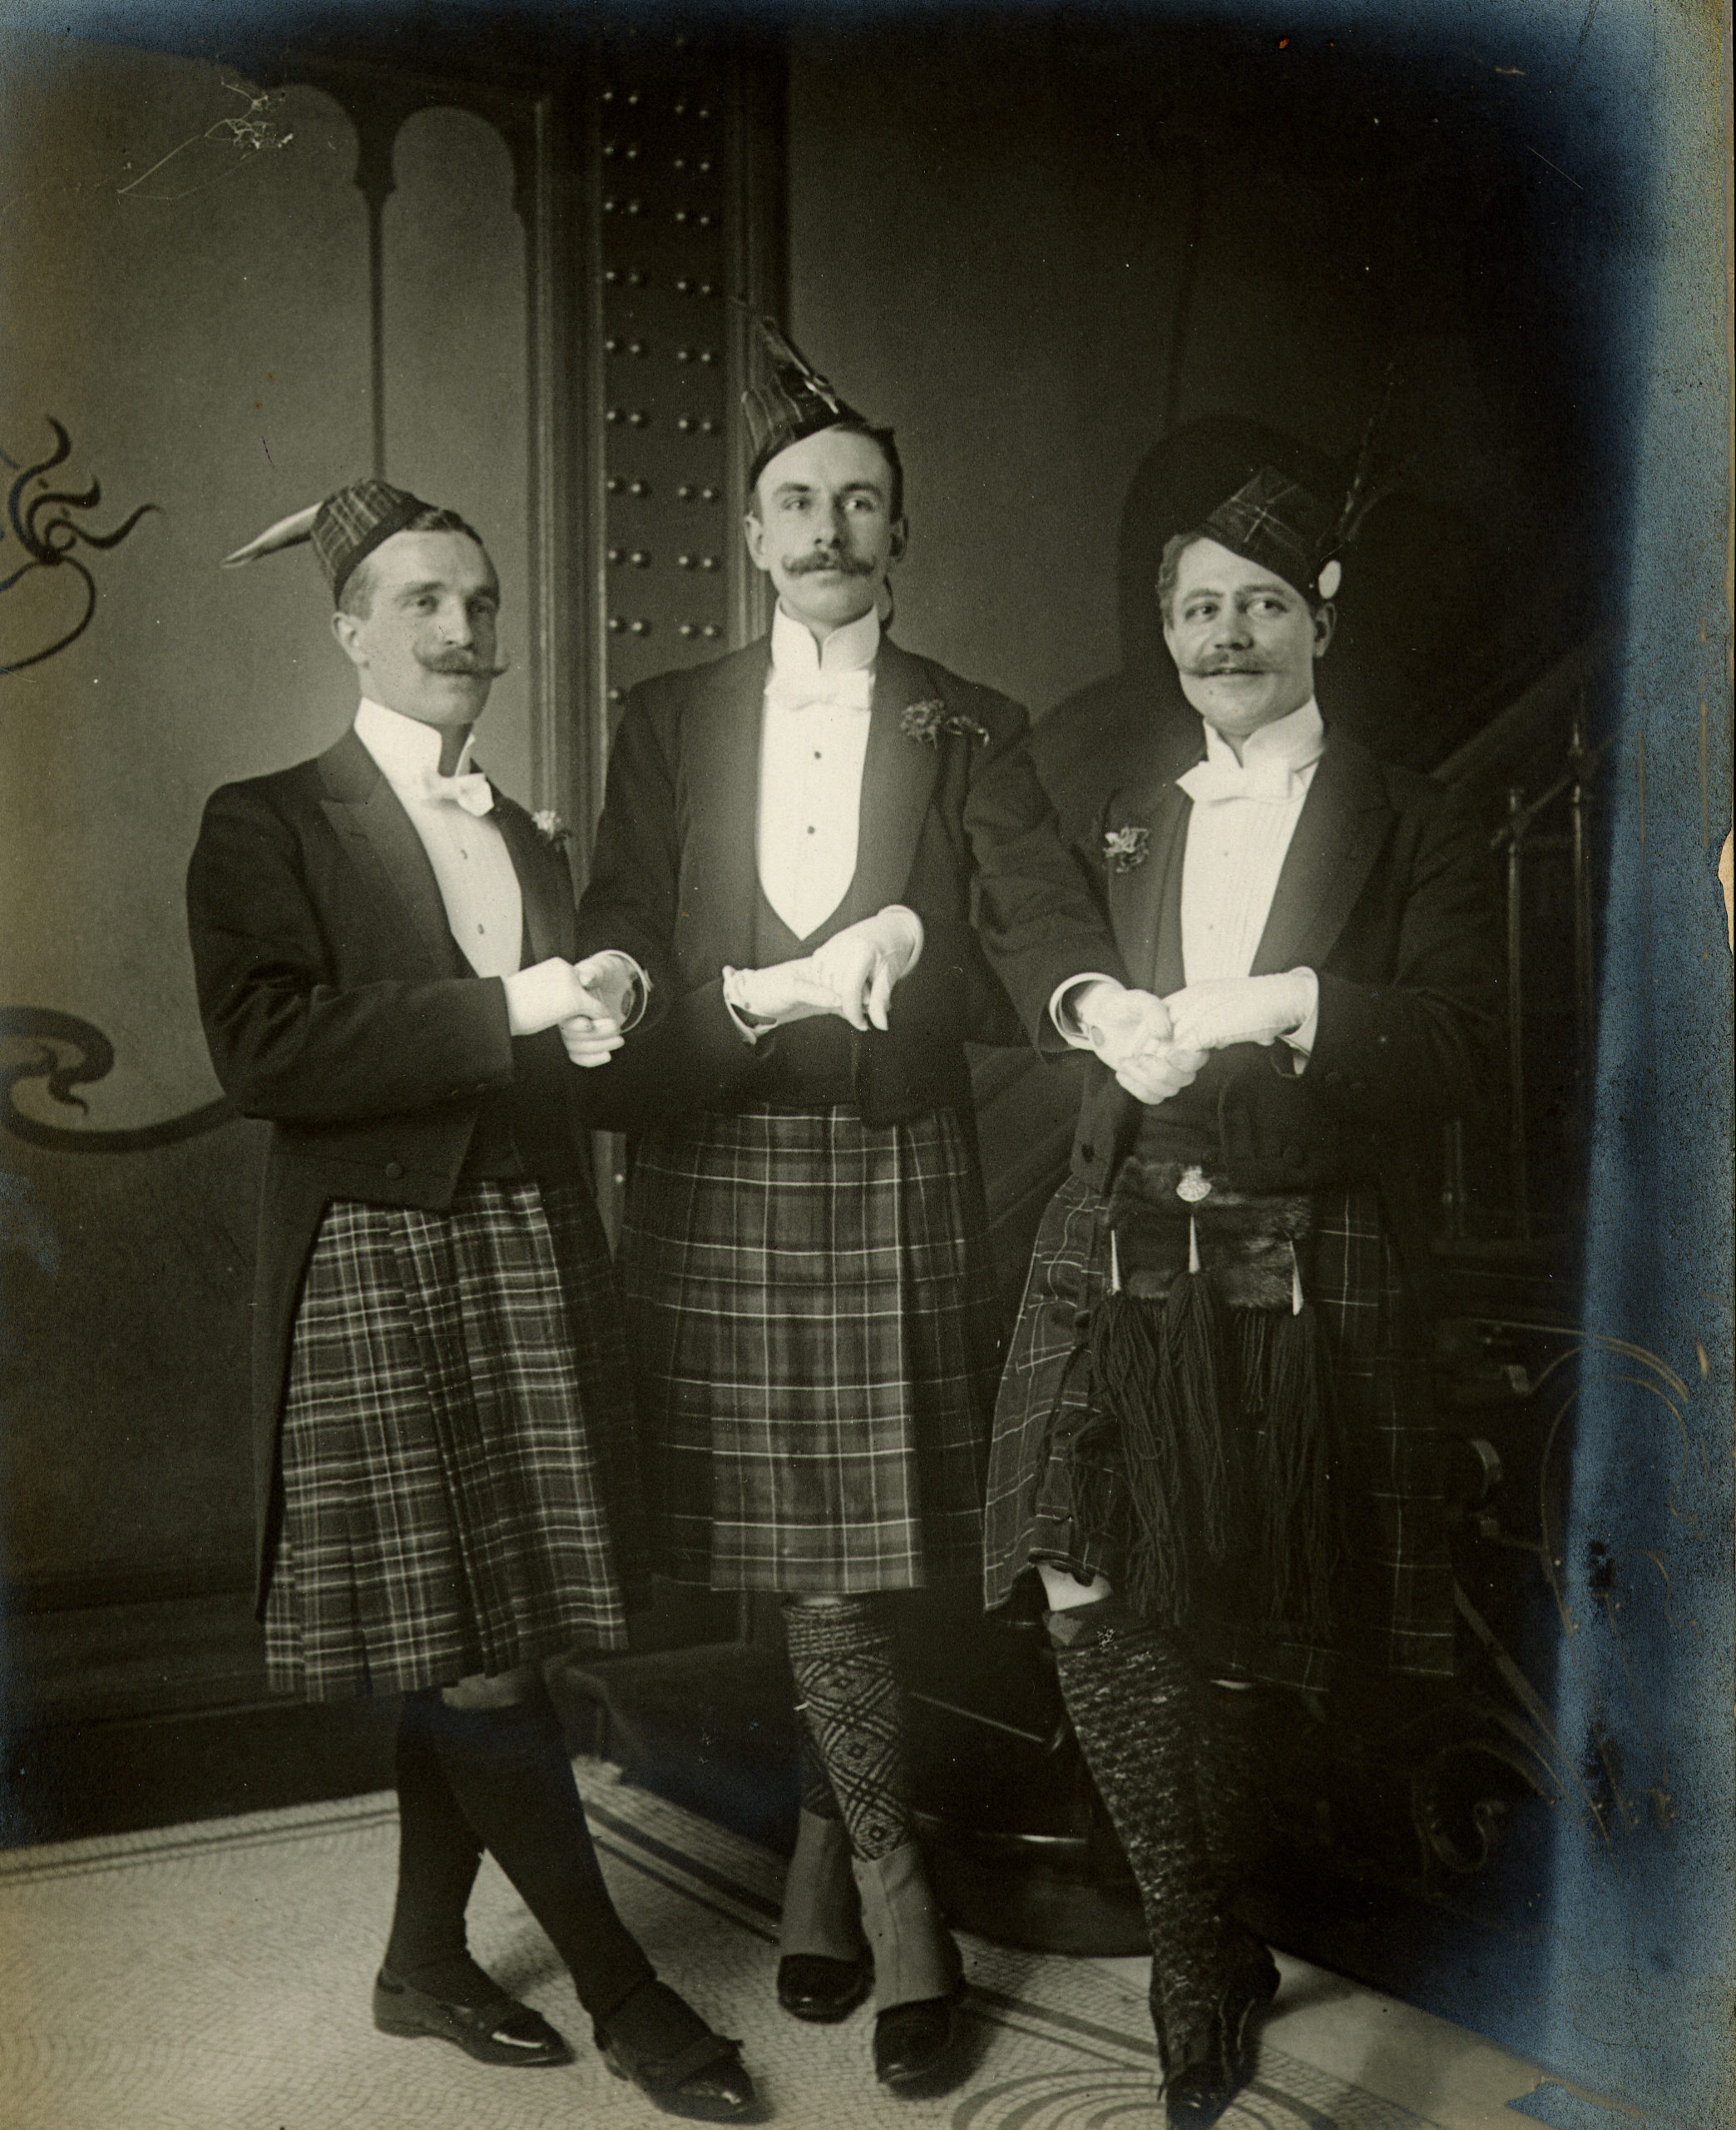 Masked ball, mezzanine landing (old photo) © Archives du Musée Horta, Saint-Gilles. All rights reserved.